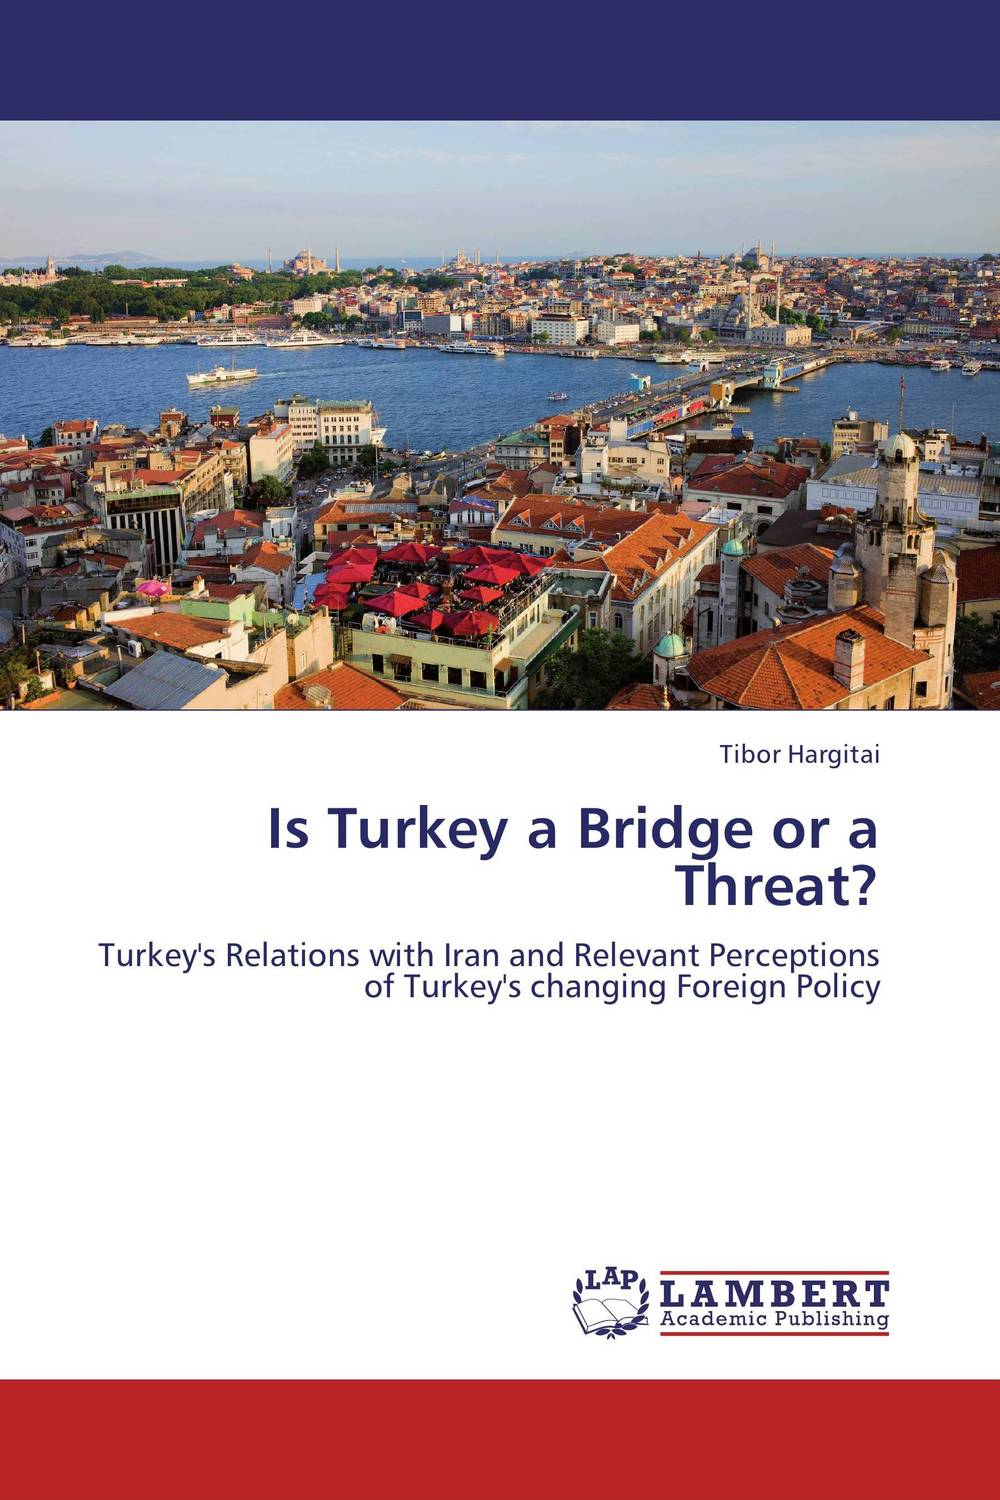 Is Turkey a Bridge or a Threat? aliou ayaba and lyhotely ndagijimana domestic worker vulnerability to violence and hiv infection